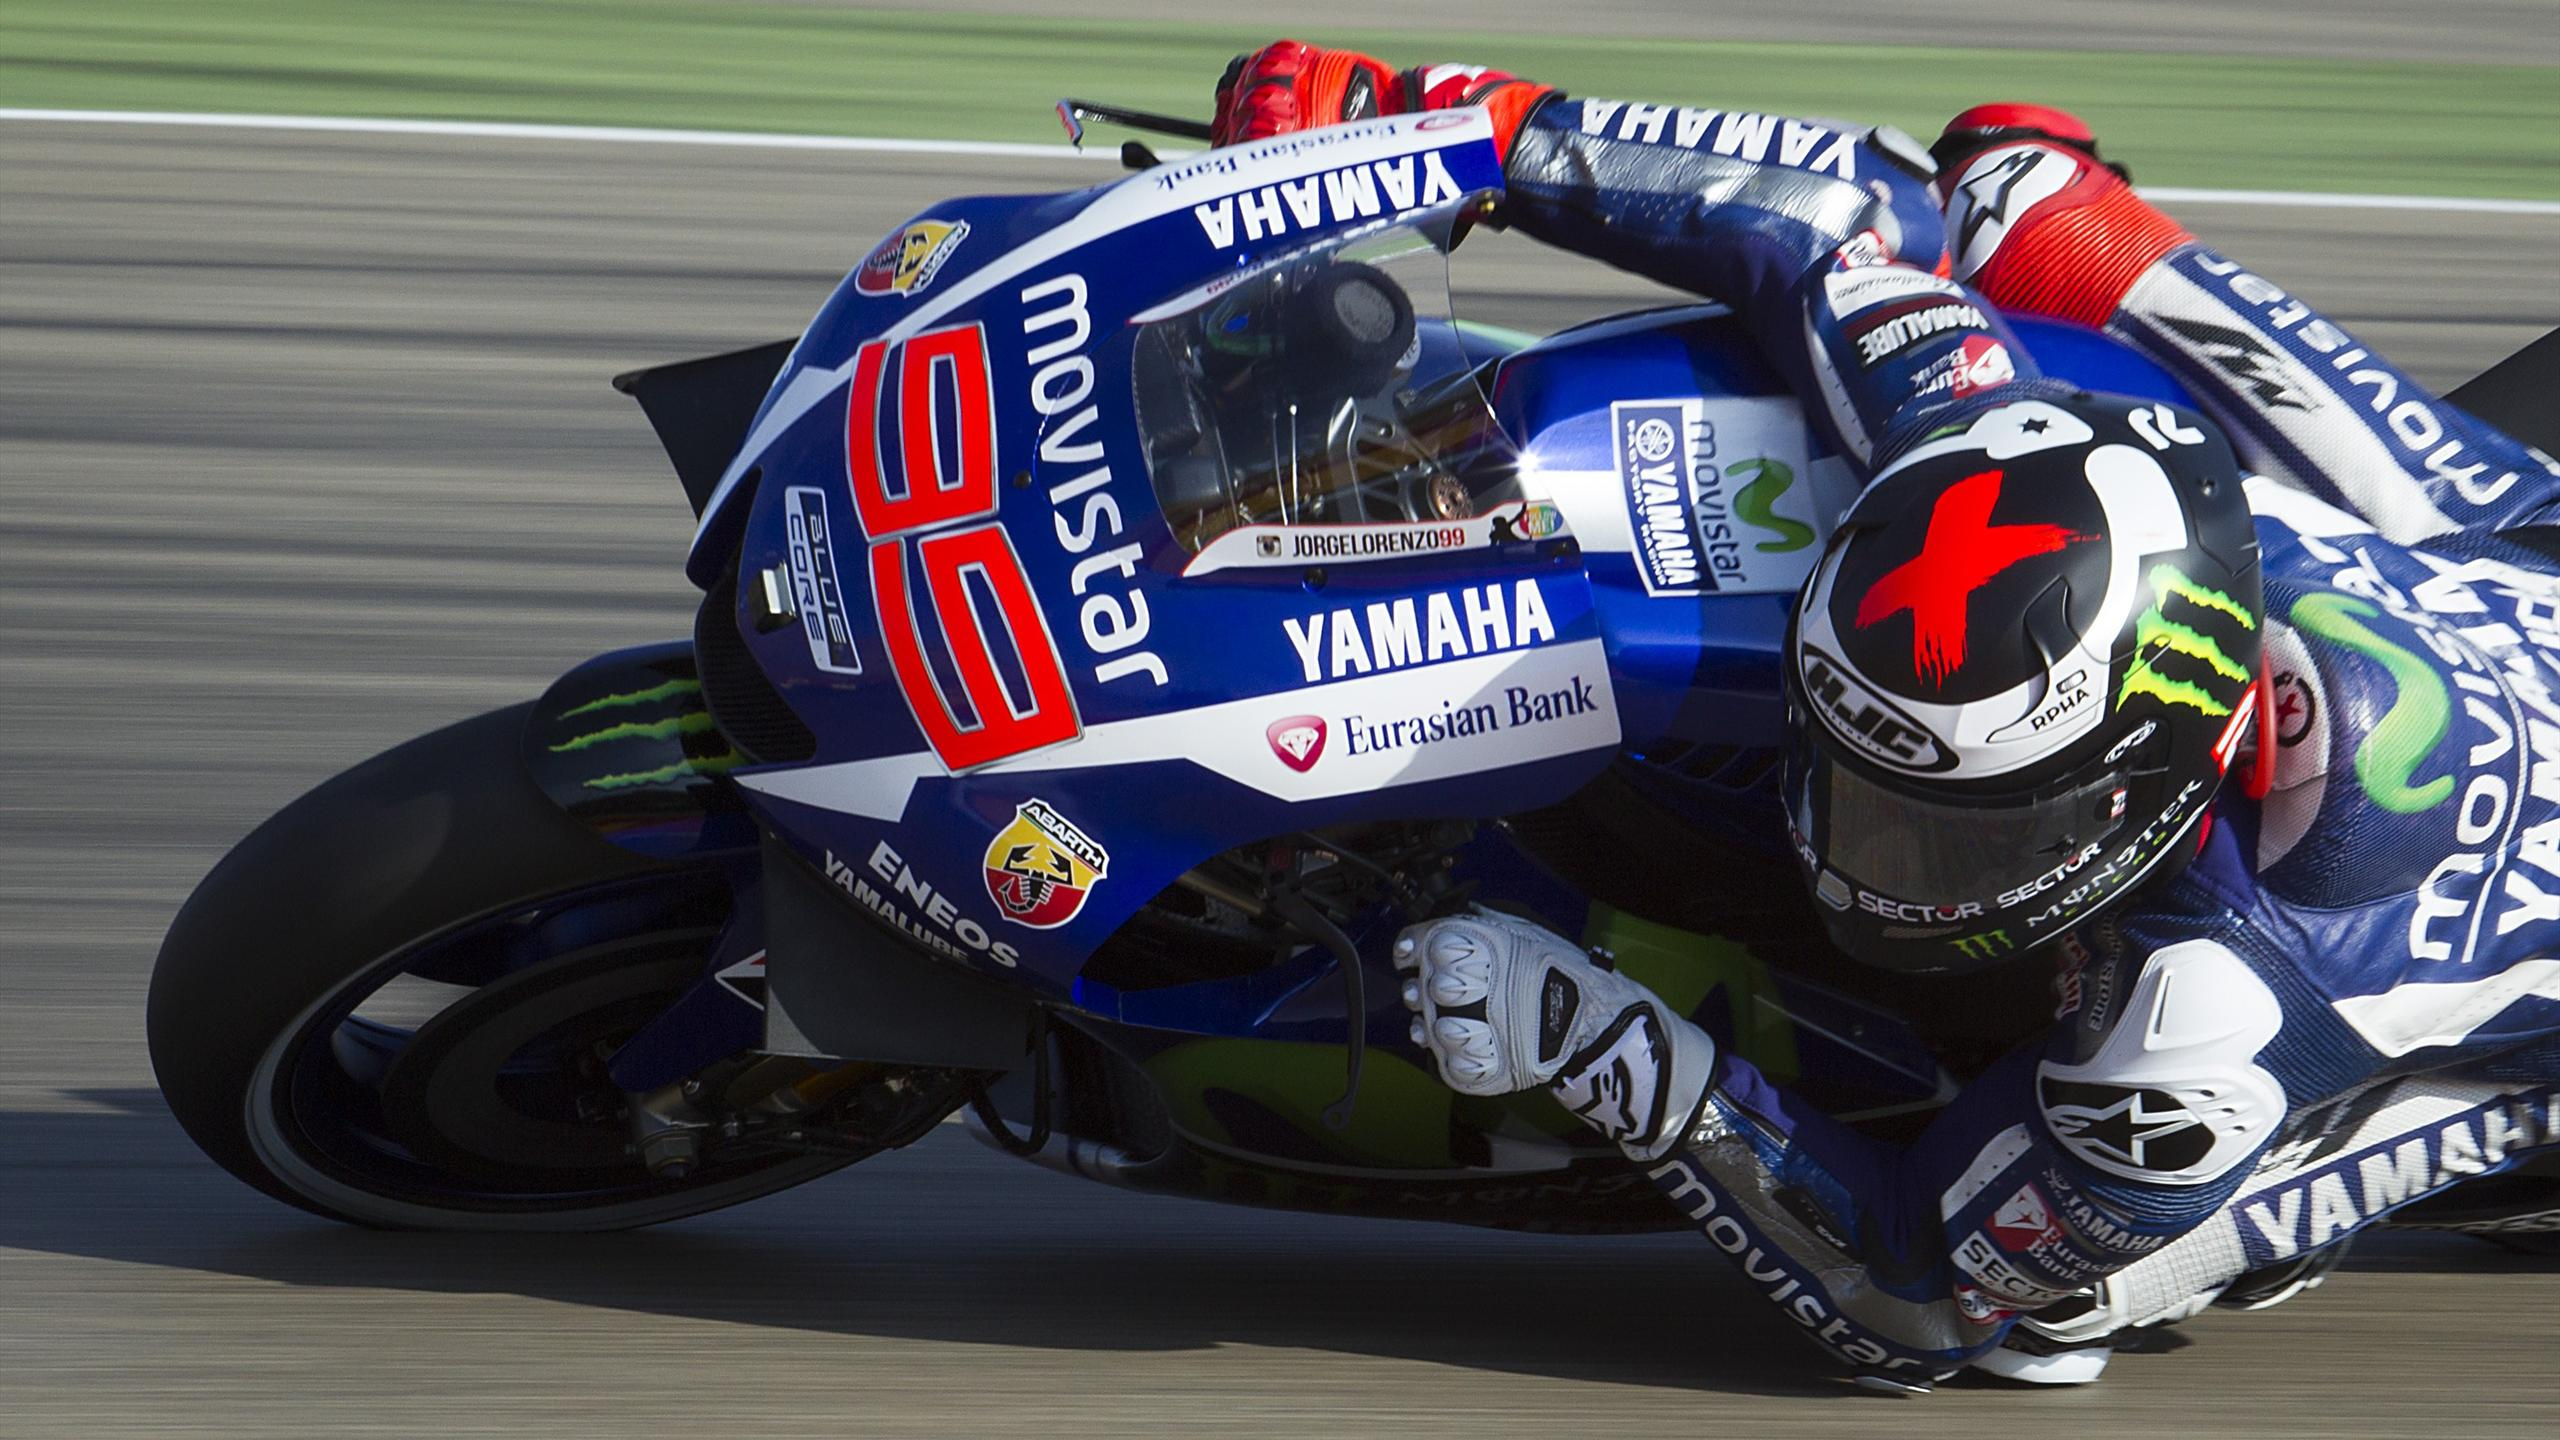 Yamaha Team's Spanish rider Jorge Lorenzo rides during the Moto GP third practice session ahead of the Aragon Grand Prix at the Motorland racetrack in Alcaniz on September 26, 2015